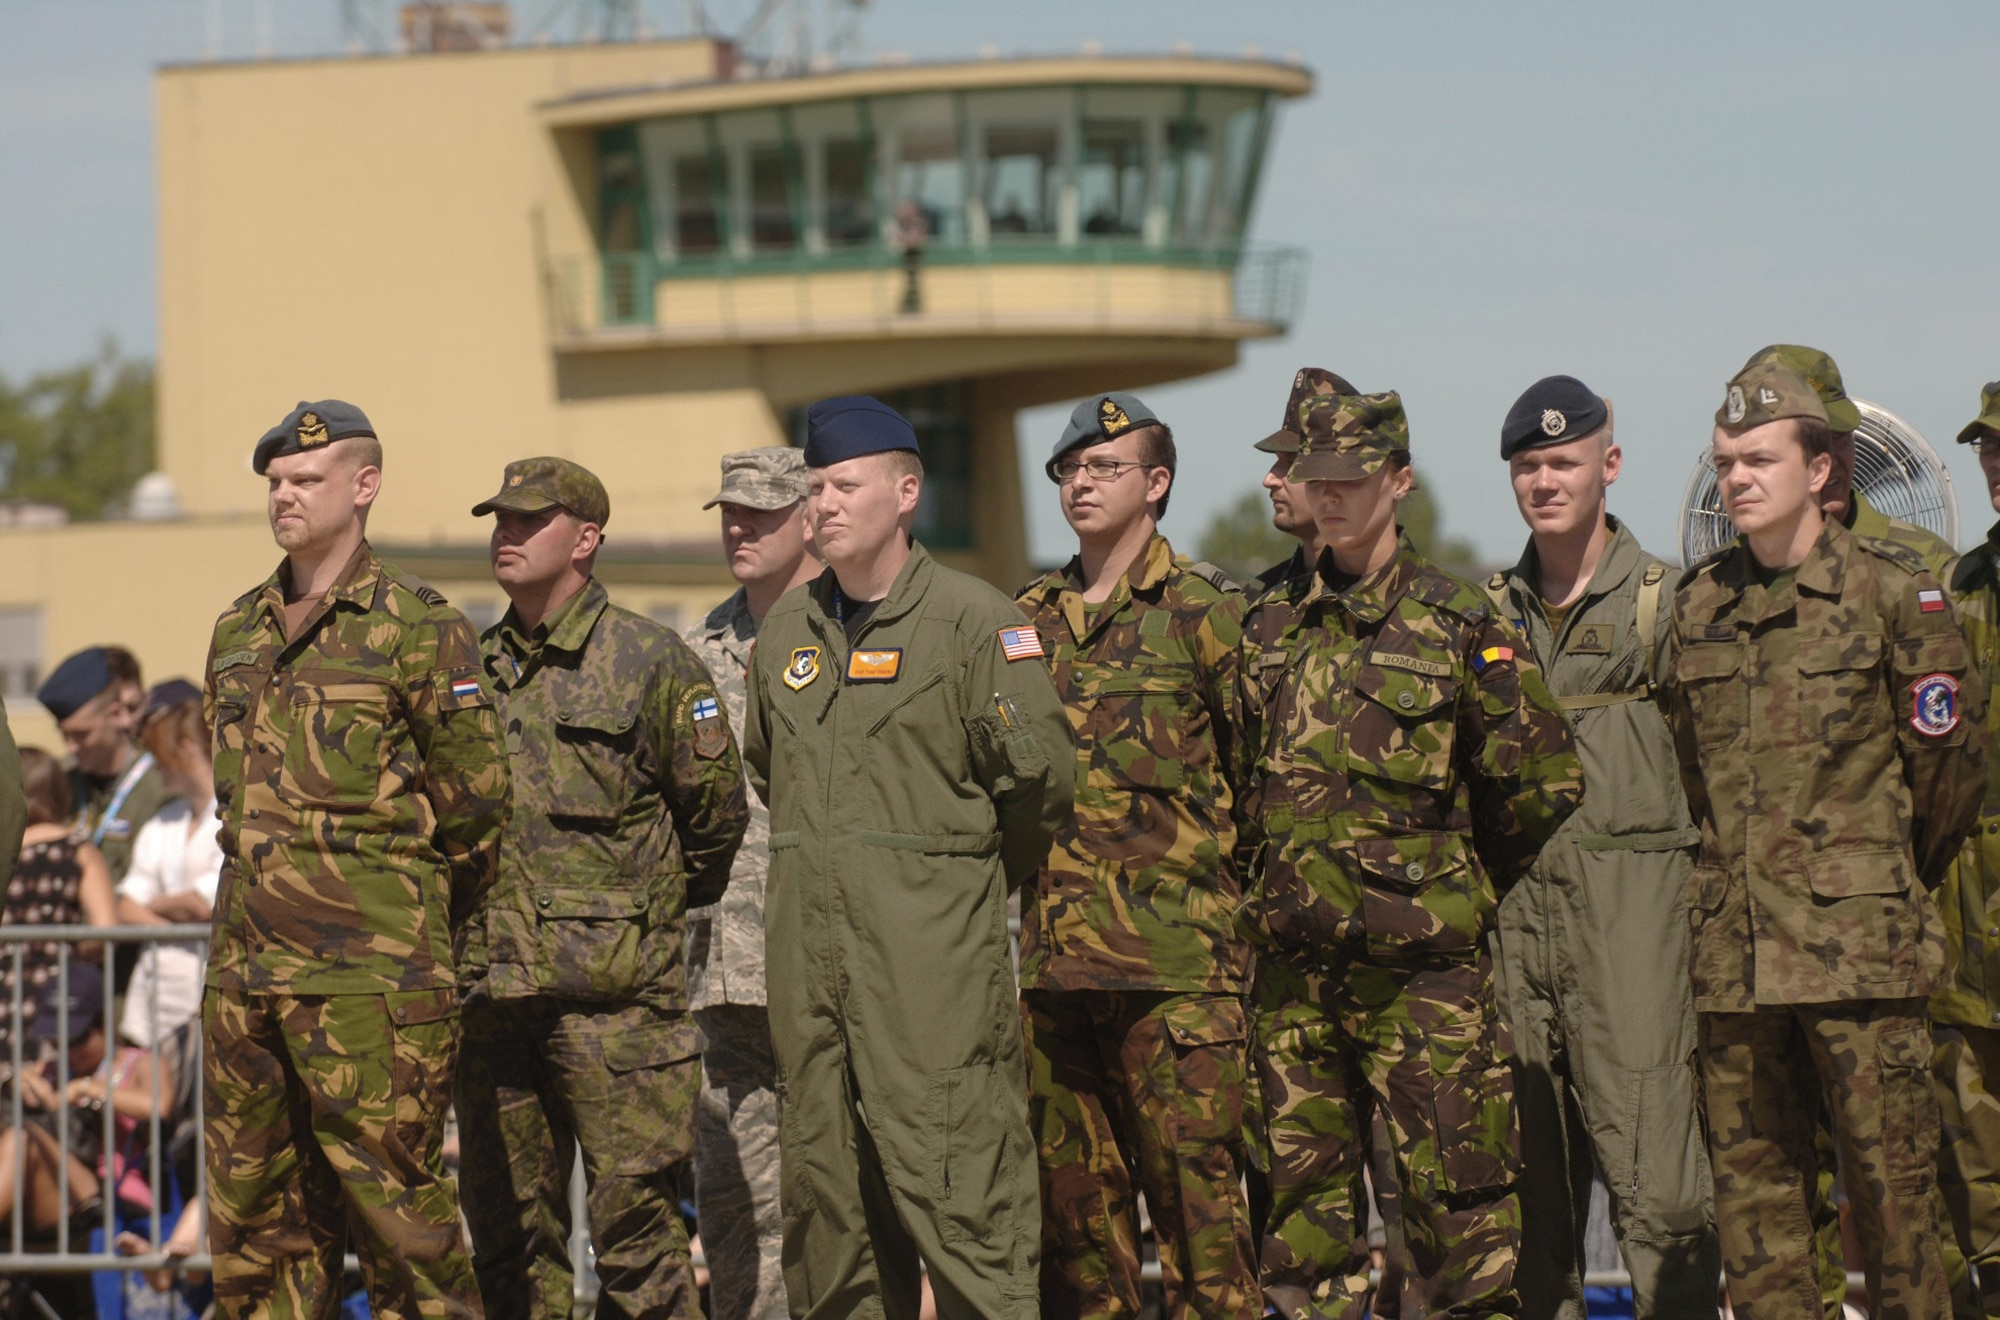 Airmen representing the 12 partnering nations take part in the activation ceremony of a first-of-its-kind multinational Heavy Airlift Wing at Papa Air Base, Hungary. The ceremony celebrated the efforts of the 12 nations who, during the last 10 months, stood up the organization that will provide strategic airlift worldwide for humanitarian, disaster relief, and peacekeeping missions in support of the European Union, United Nations and NATO. (U.S. Air Force photo/Master Sgt. Scott Wagers)